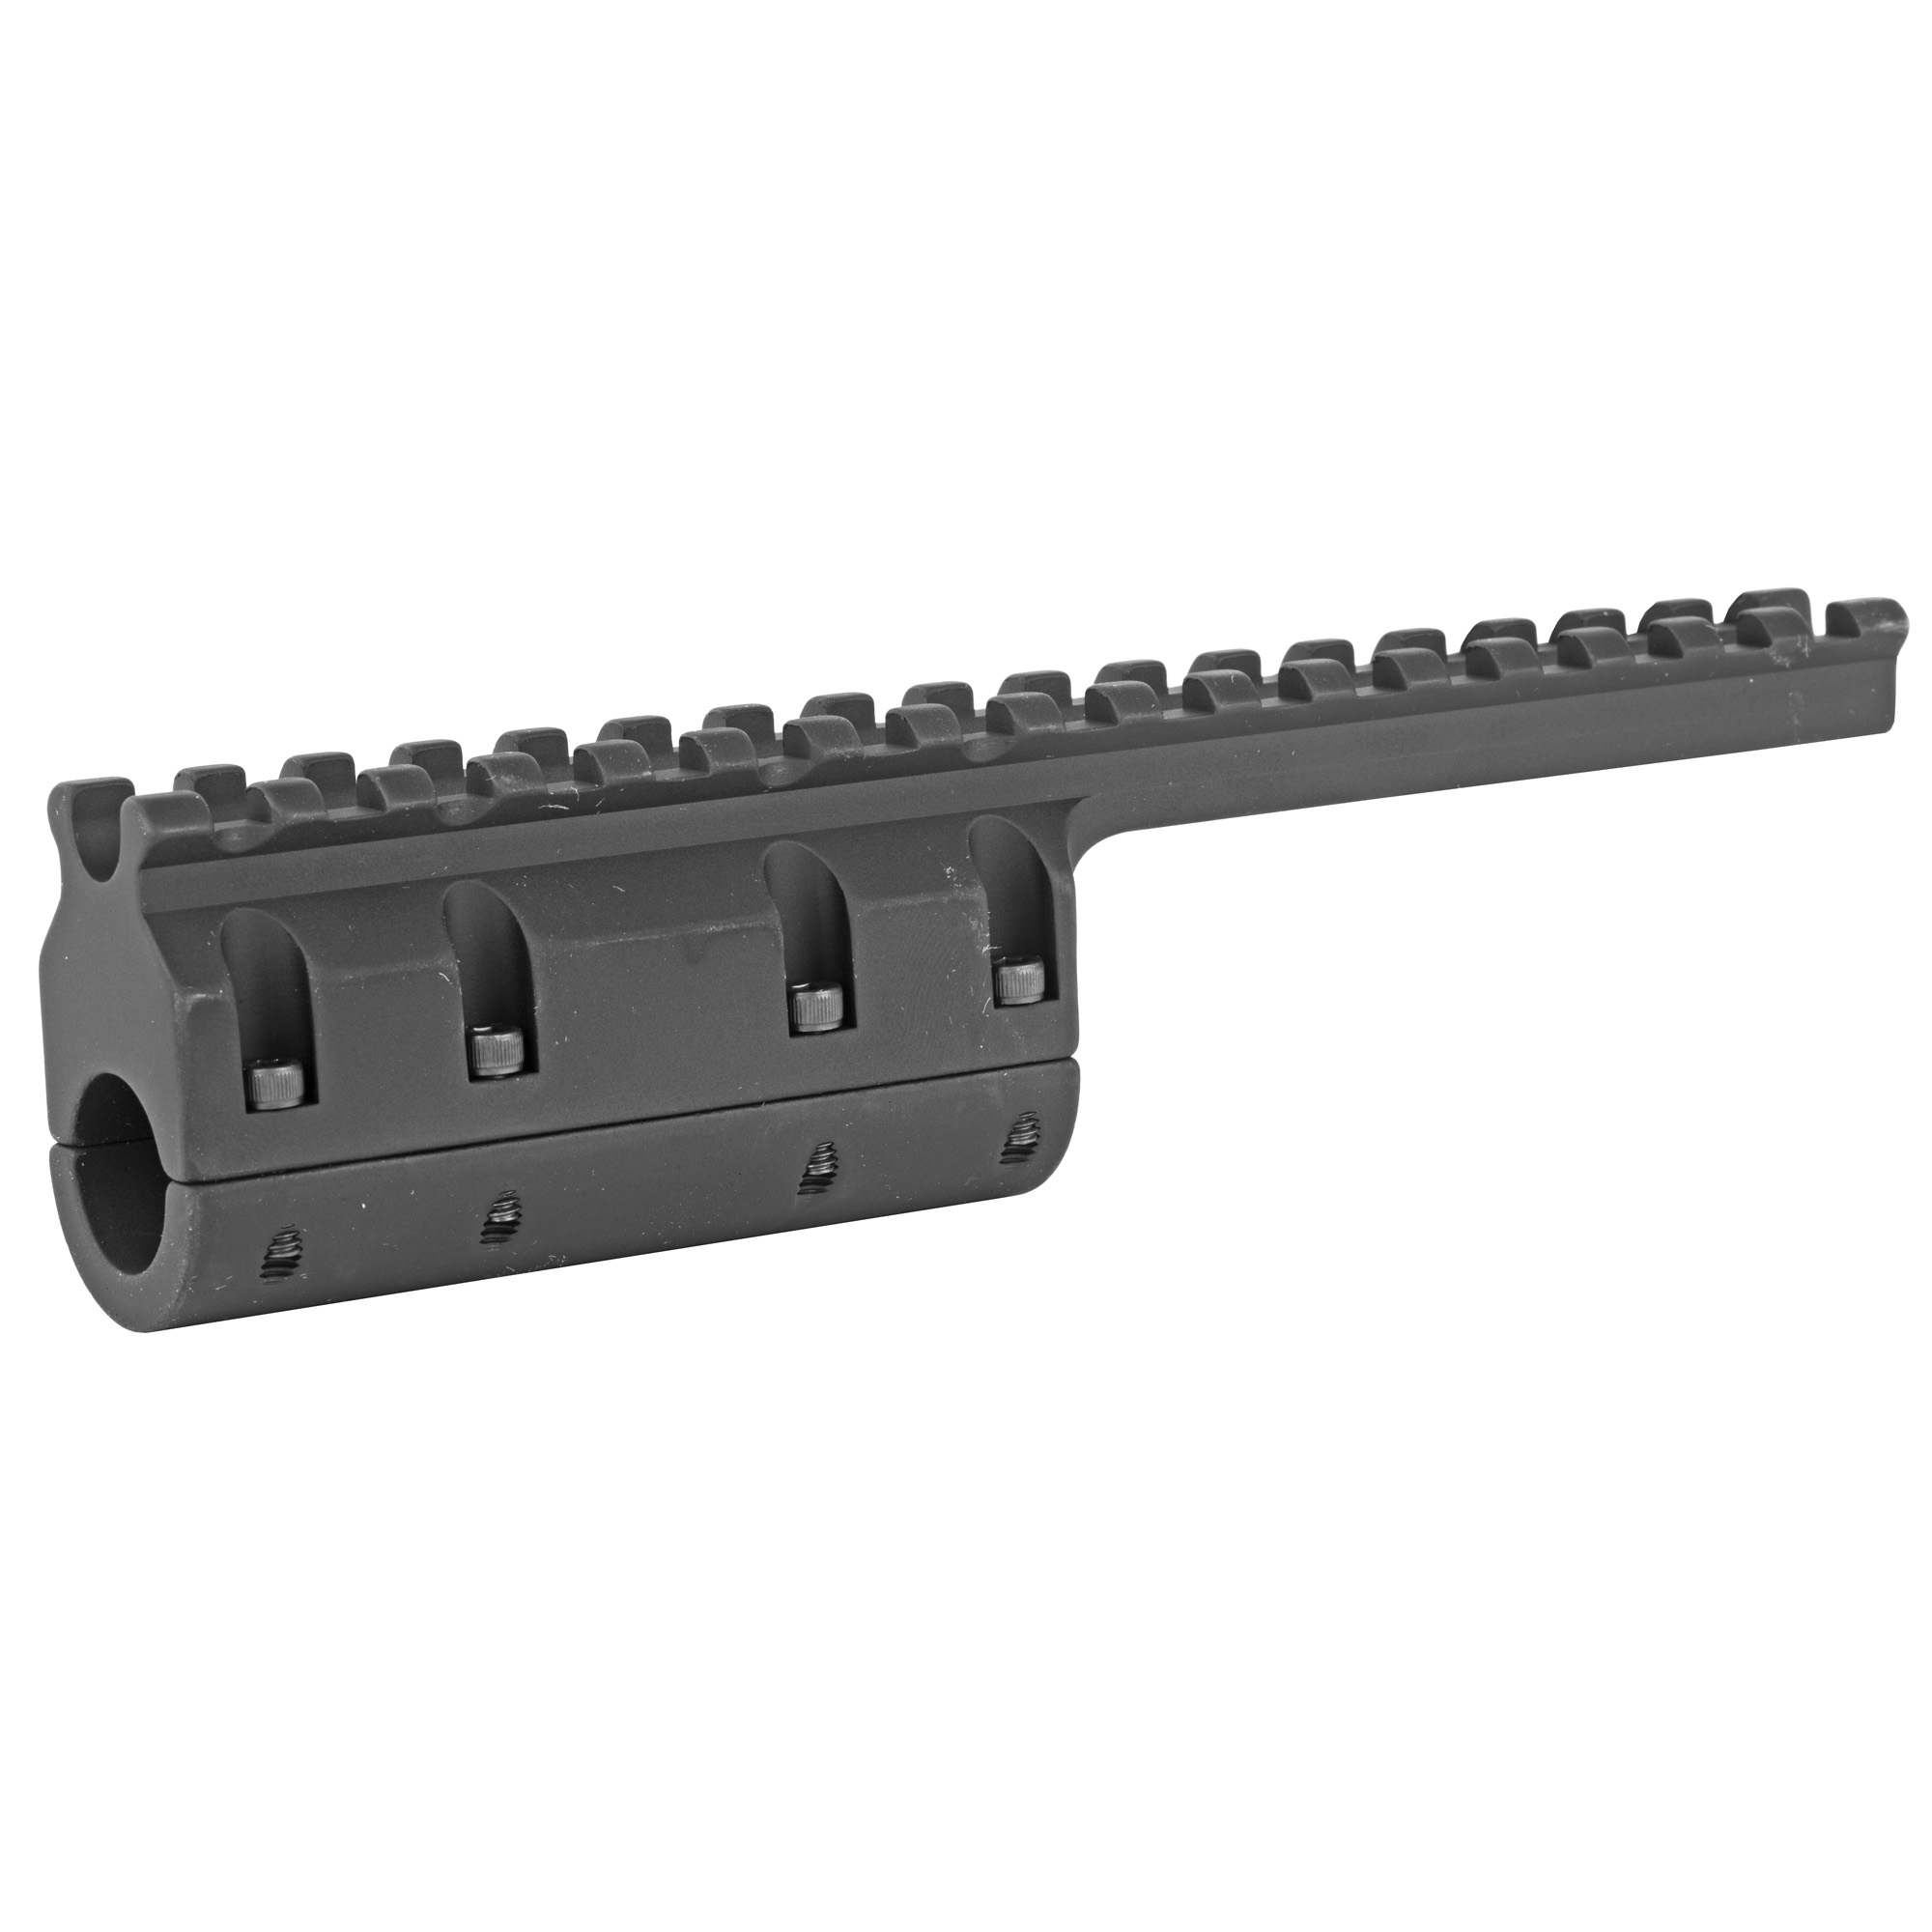 """The GG&G M1A Scout Scope Mount is perfect for setting up your rifle with a red dot scope or long eye relief magnified scope. It easily installs in the cut out of the upper factory handguard. GG&G cut a large channel in the rail so that the iron sights could be used with the scope in place. Specifically designed for the M1A """"Scout Squad"""" or """"SOCOM 16"""""""" with cutout factory top handguard."""